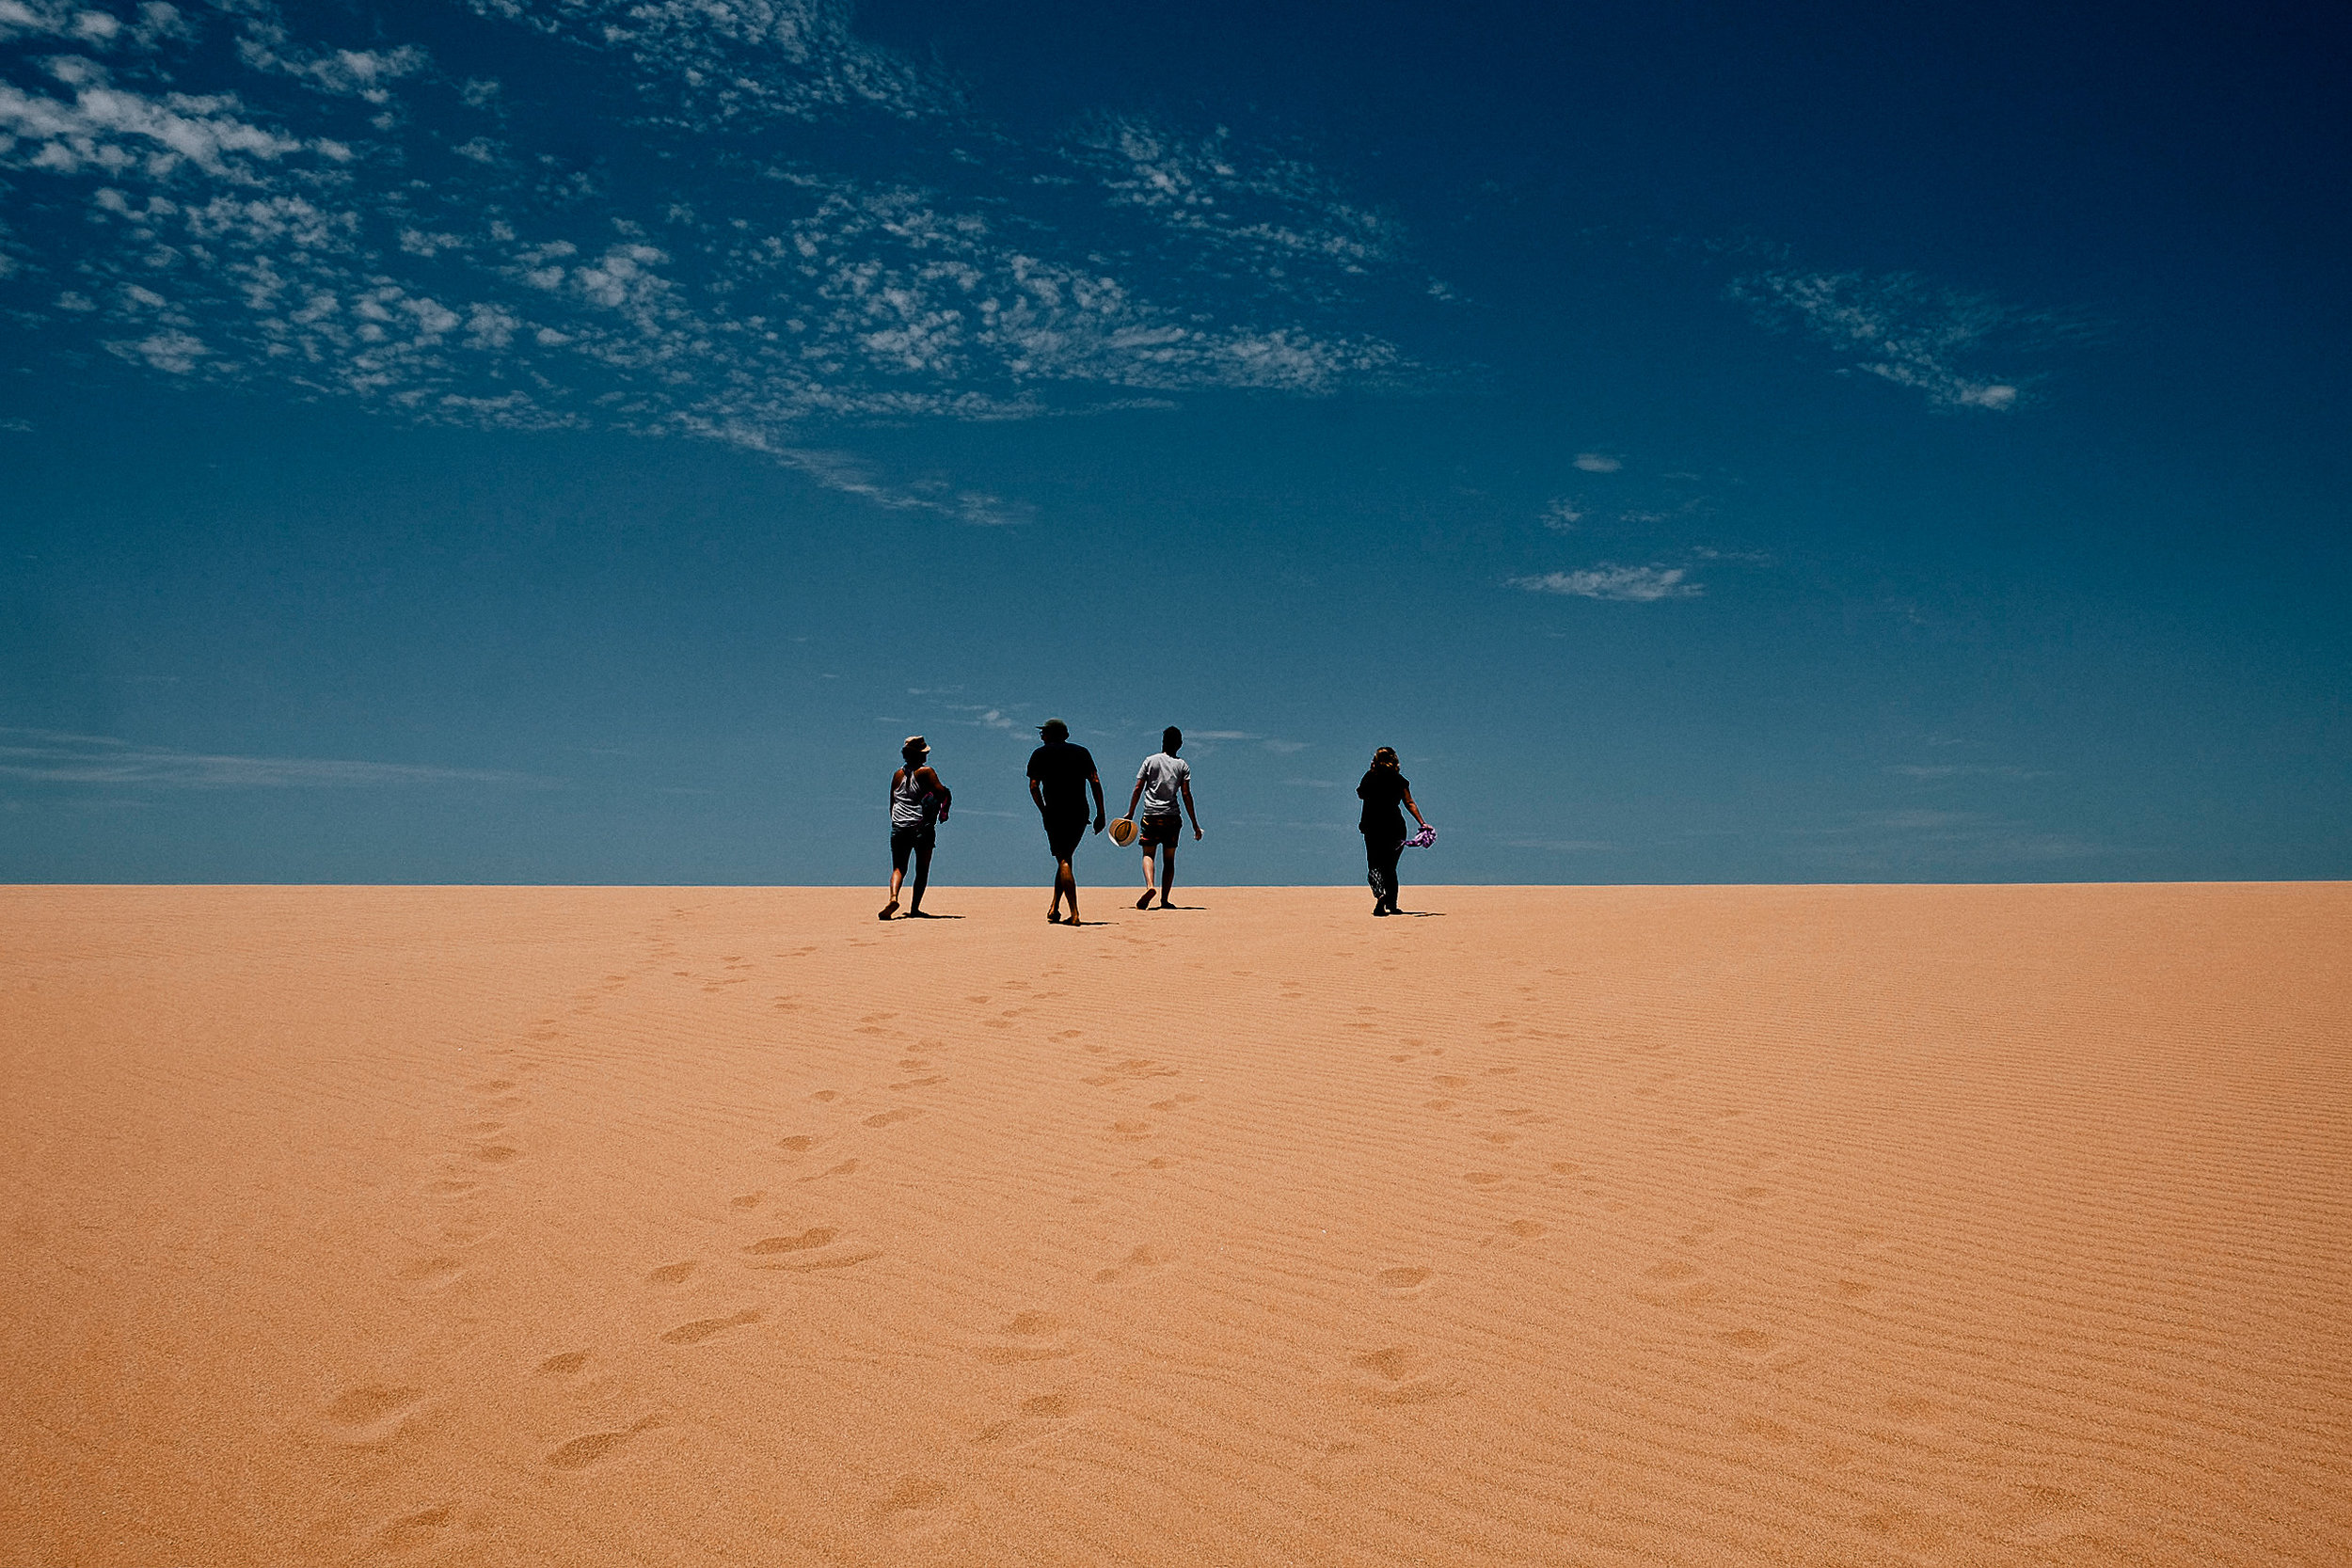 Climbing over the massive Taroa Dunes, we were not prepared to see the ocean on the other side.